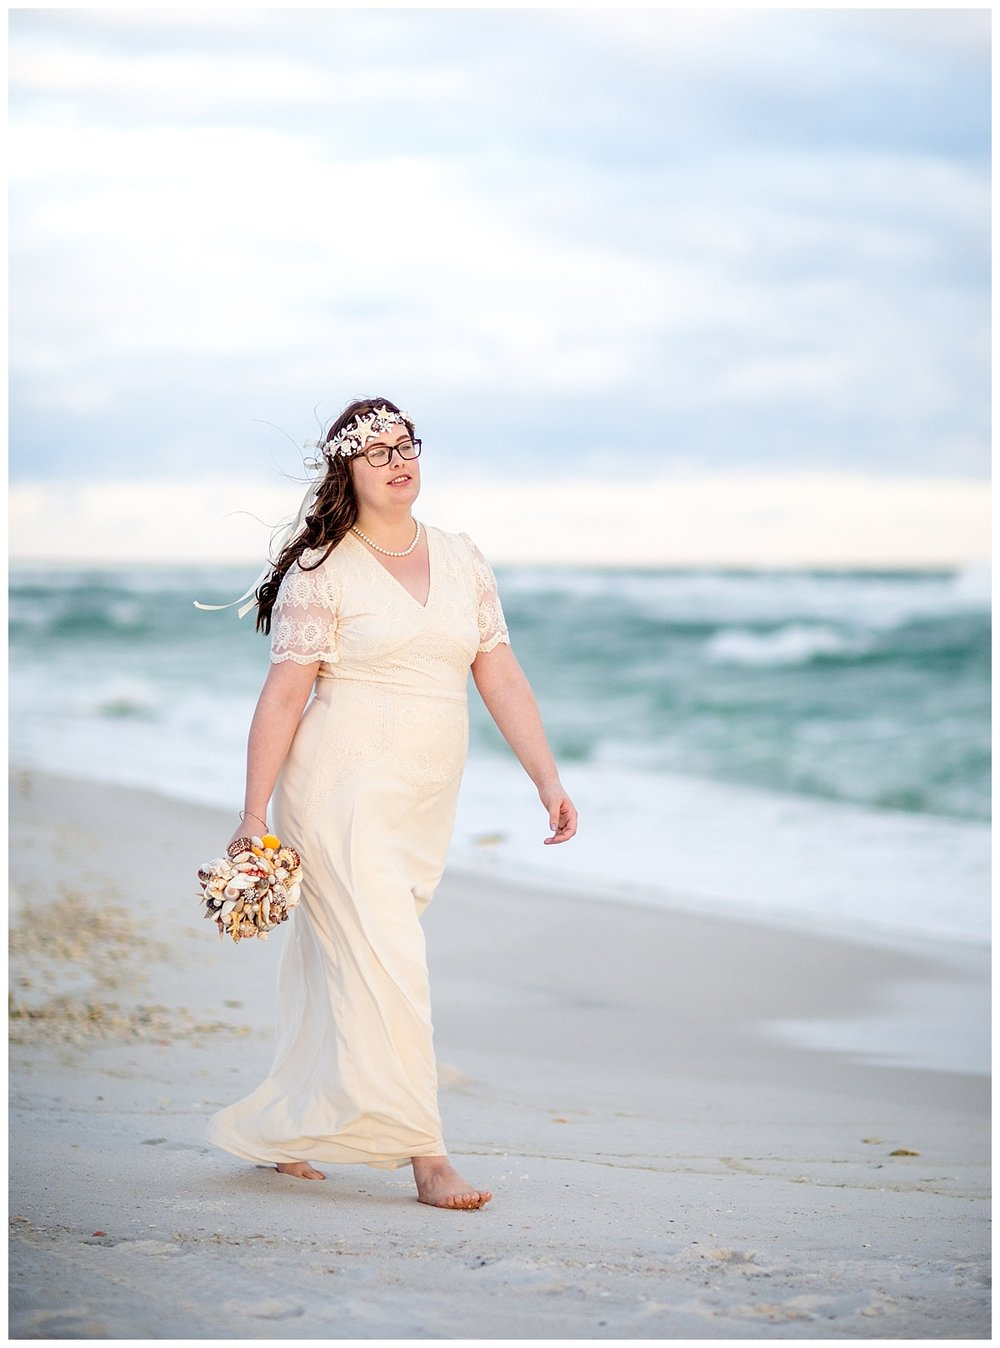 17 Weddings on the beach.jpg